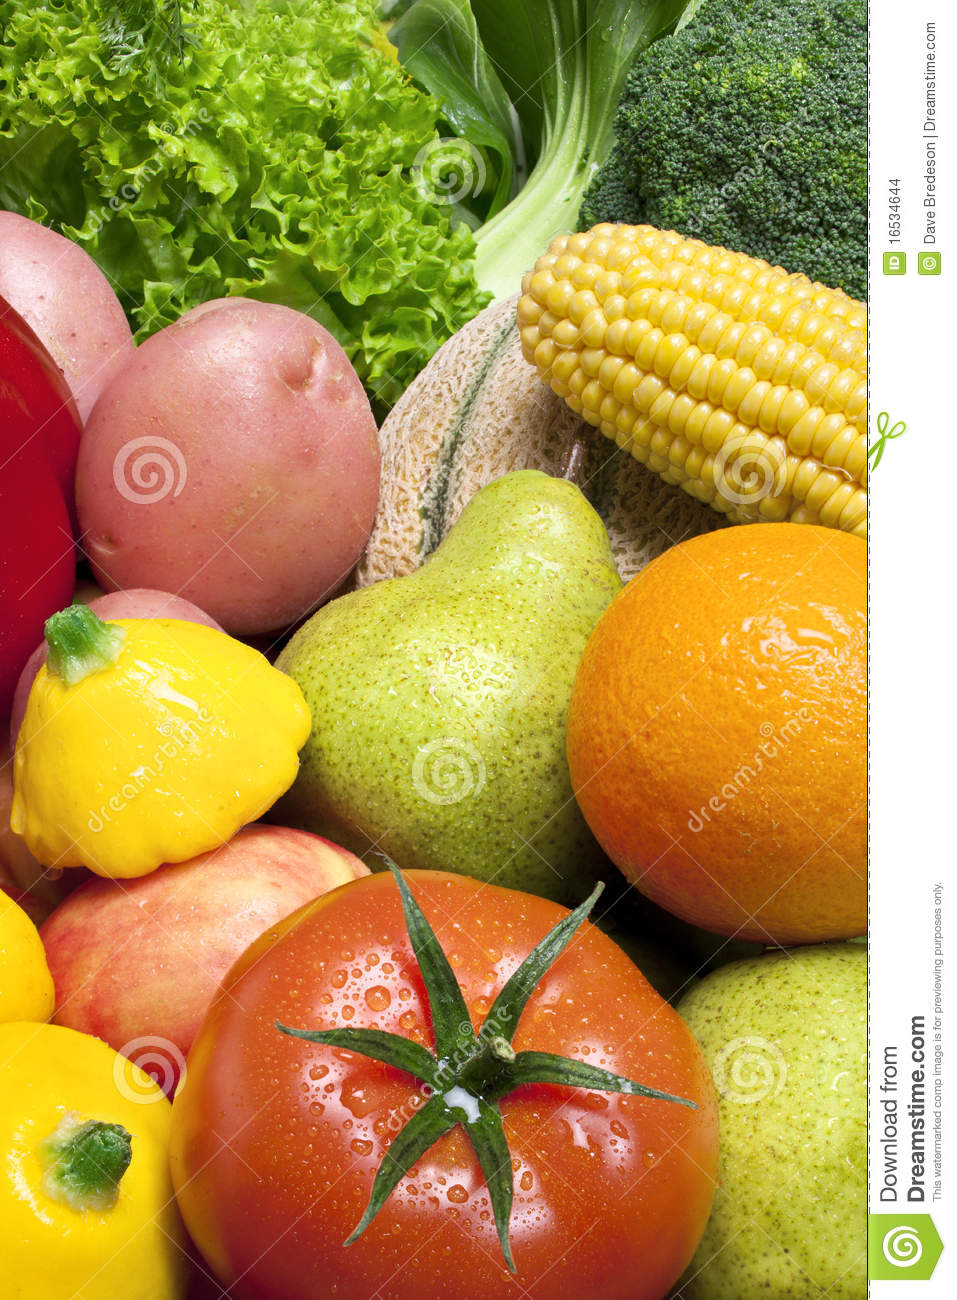 Mixed Fruit and Vegetables